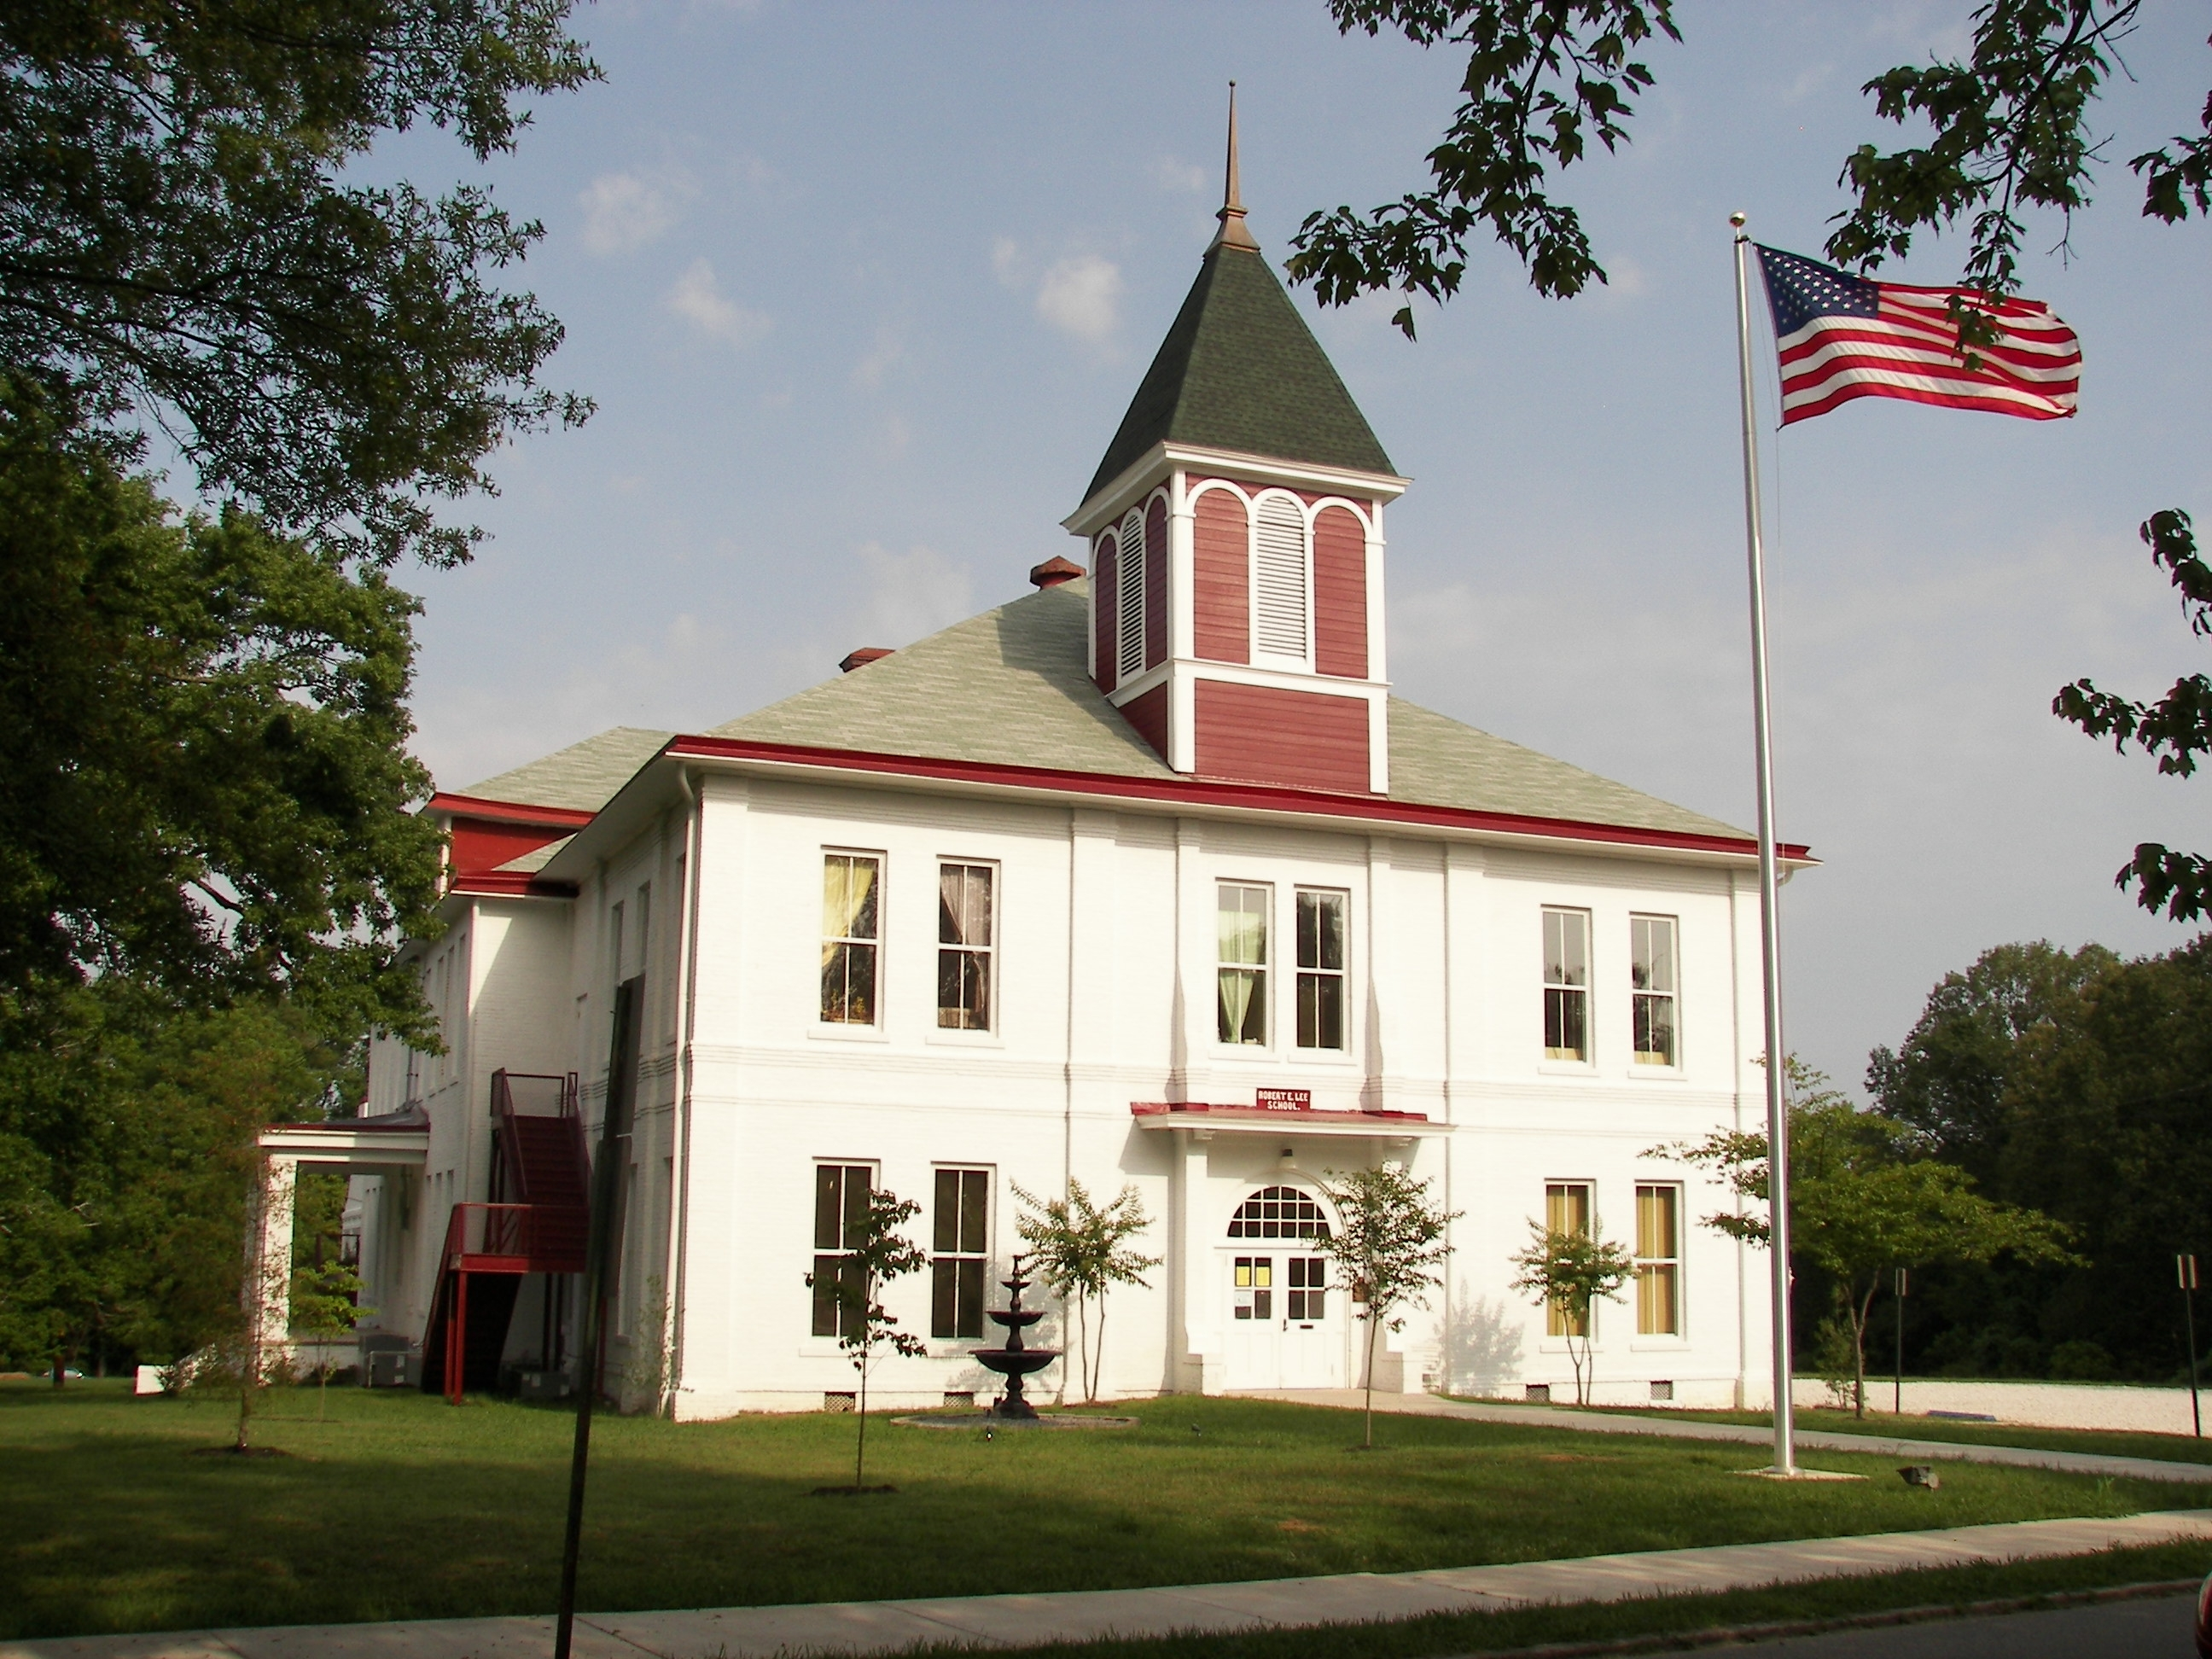 The Lee Academy For the Arts, formerly Robert E. Lee School, was built in 1893.